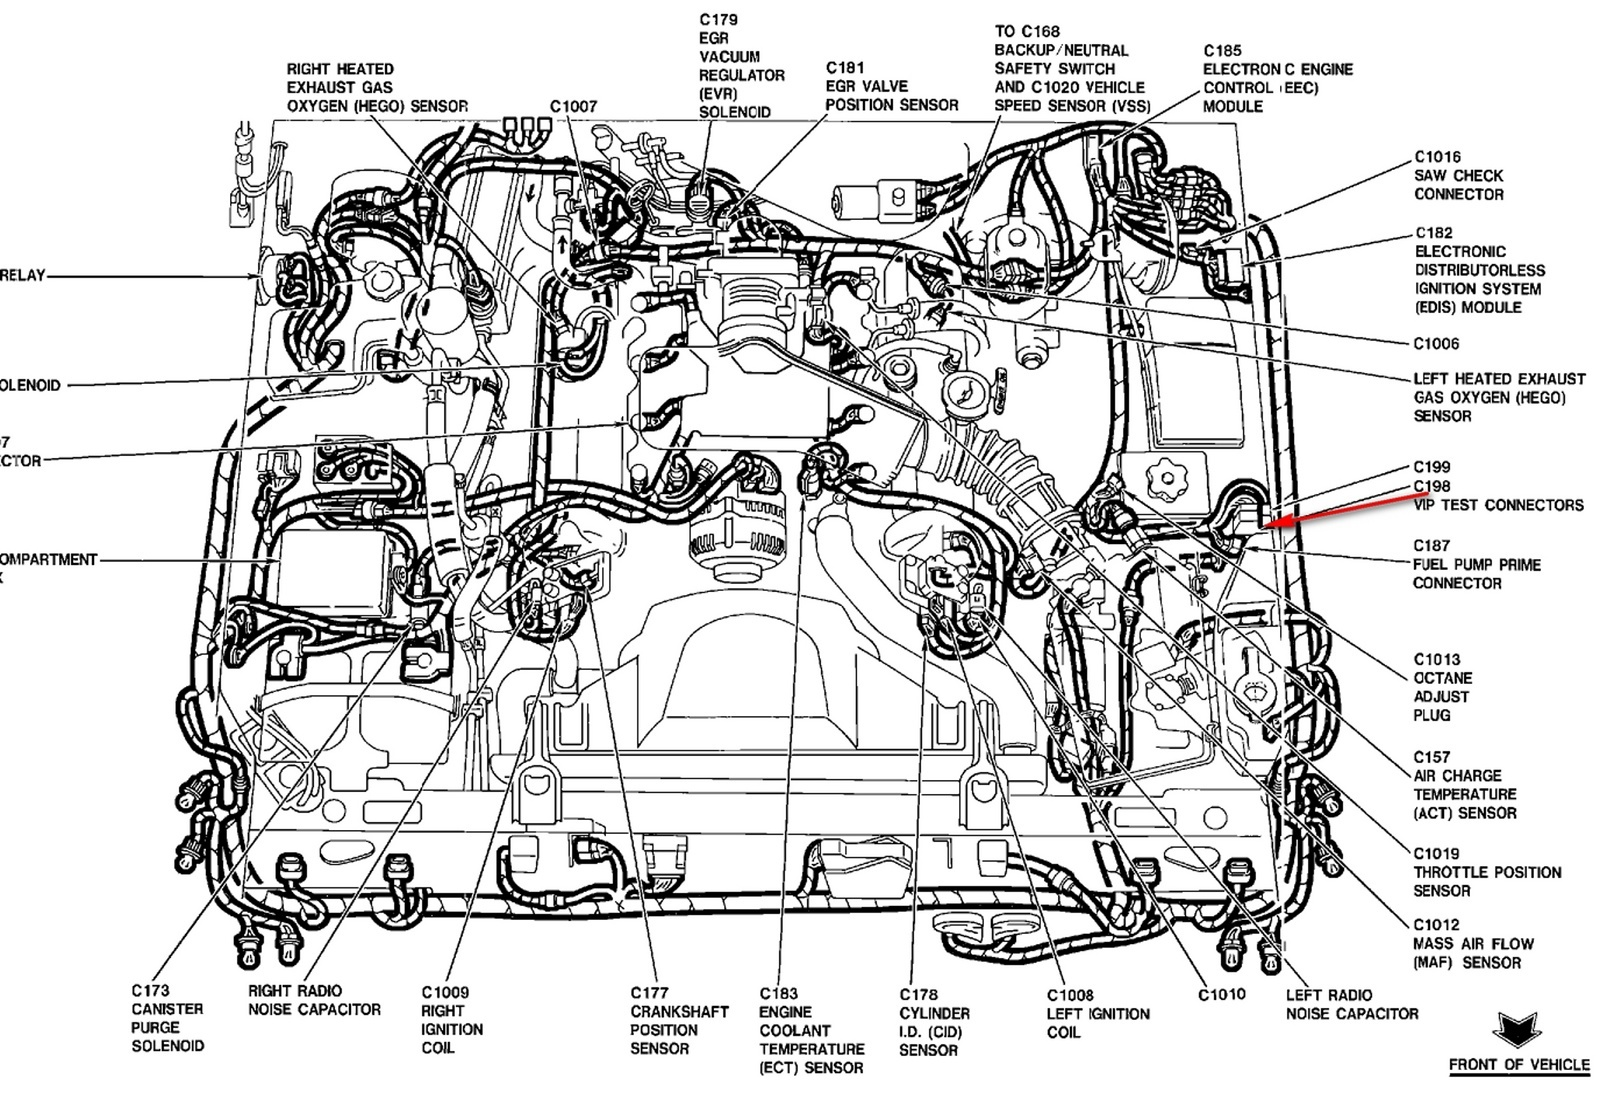 hight resolution of 1992 ford crown victoria 4 6 engine diagram opinions about wiring 2001 ford crown victoria power